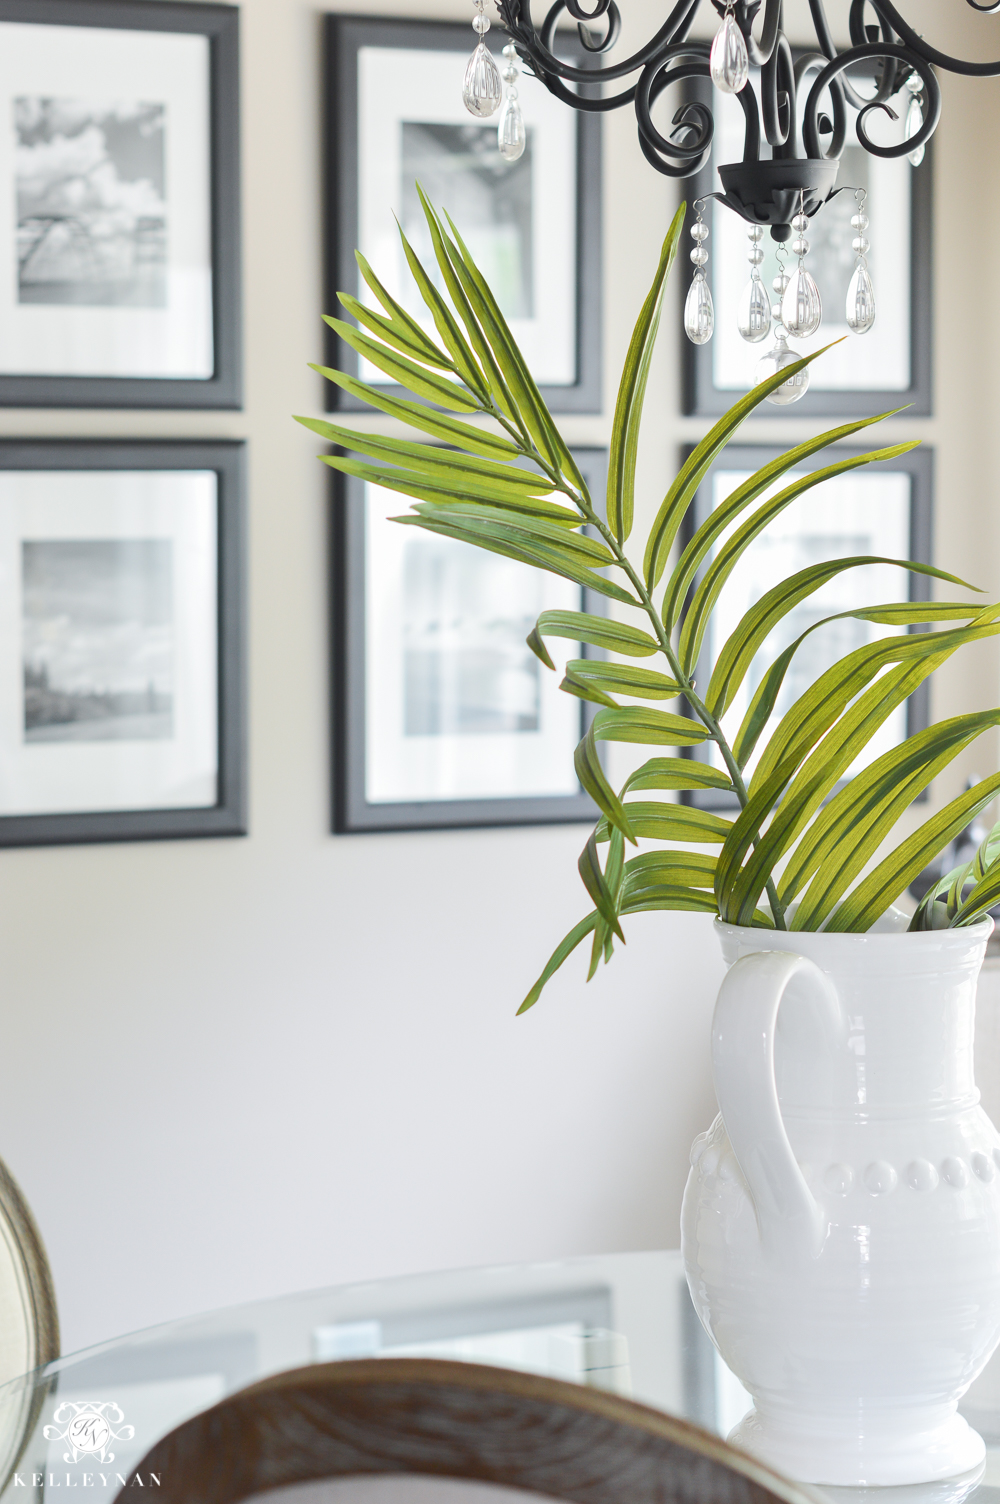 Shades of Summer Home Tour with Neutrals and Naturals- palm leaf centerpiece in vase with black and white travel gallery wall